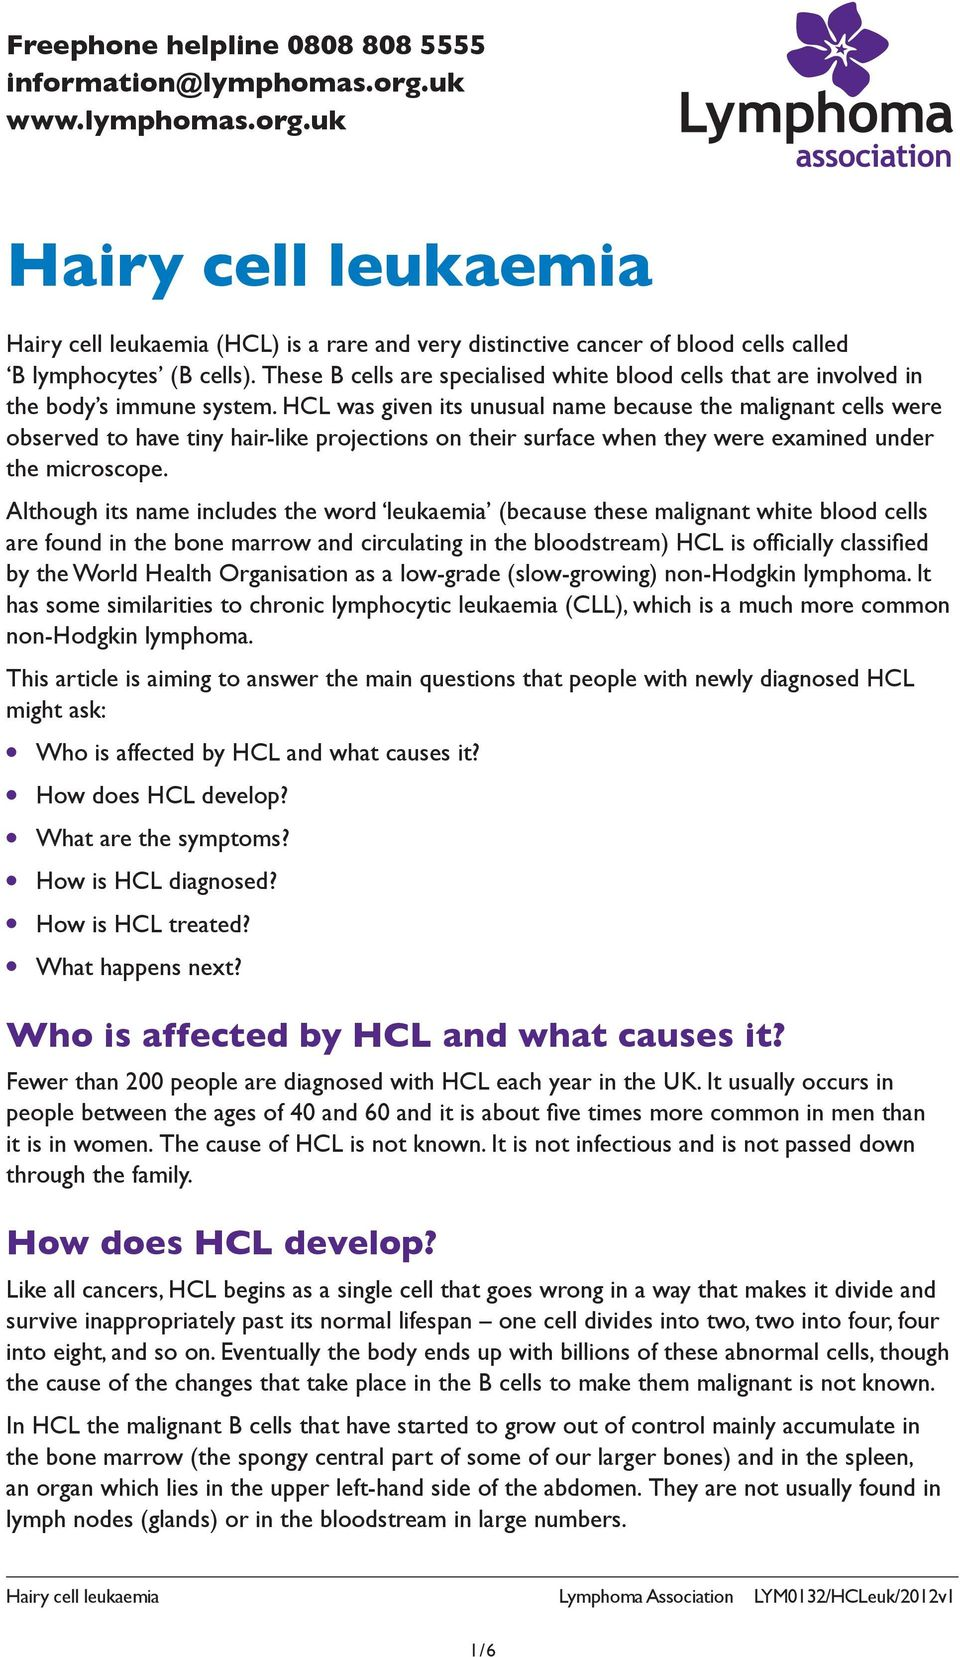 HCL was given its unusual name because the malignant cells were observed to have tiny hair-like projections on their surface when they were examined under the microscope.